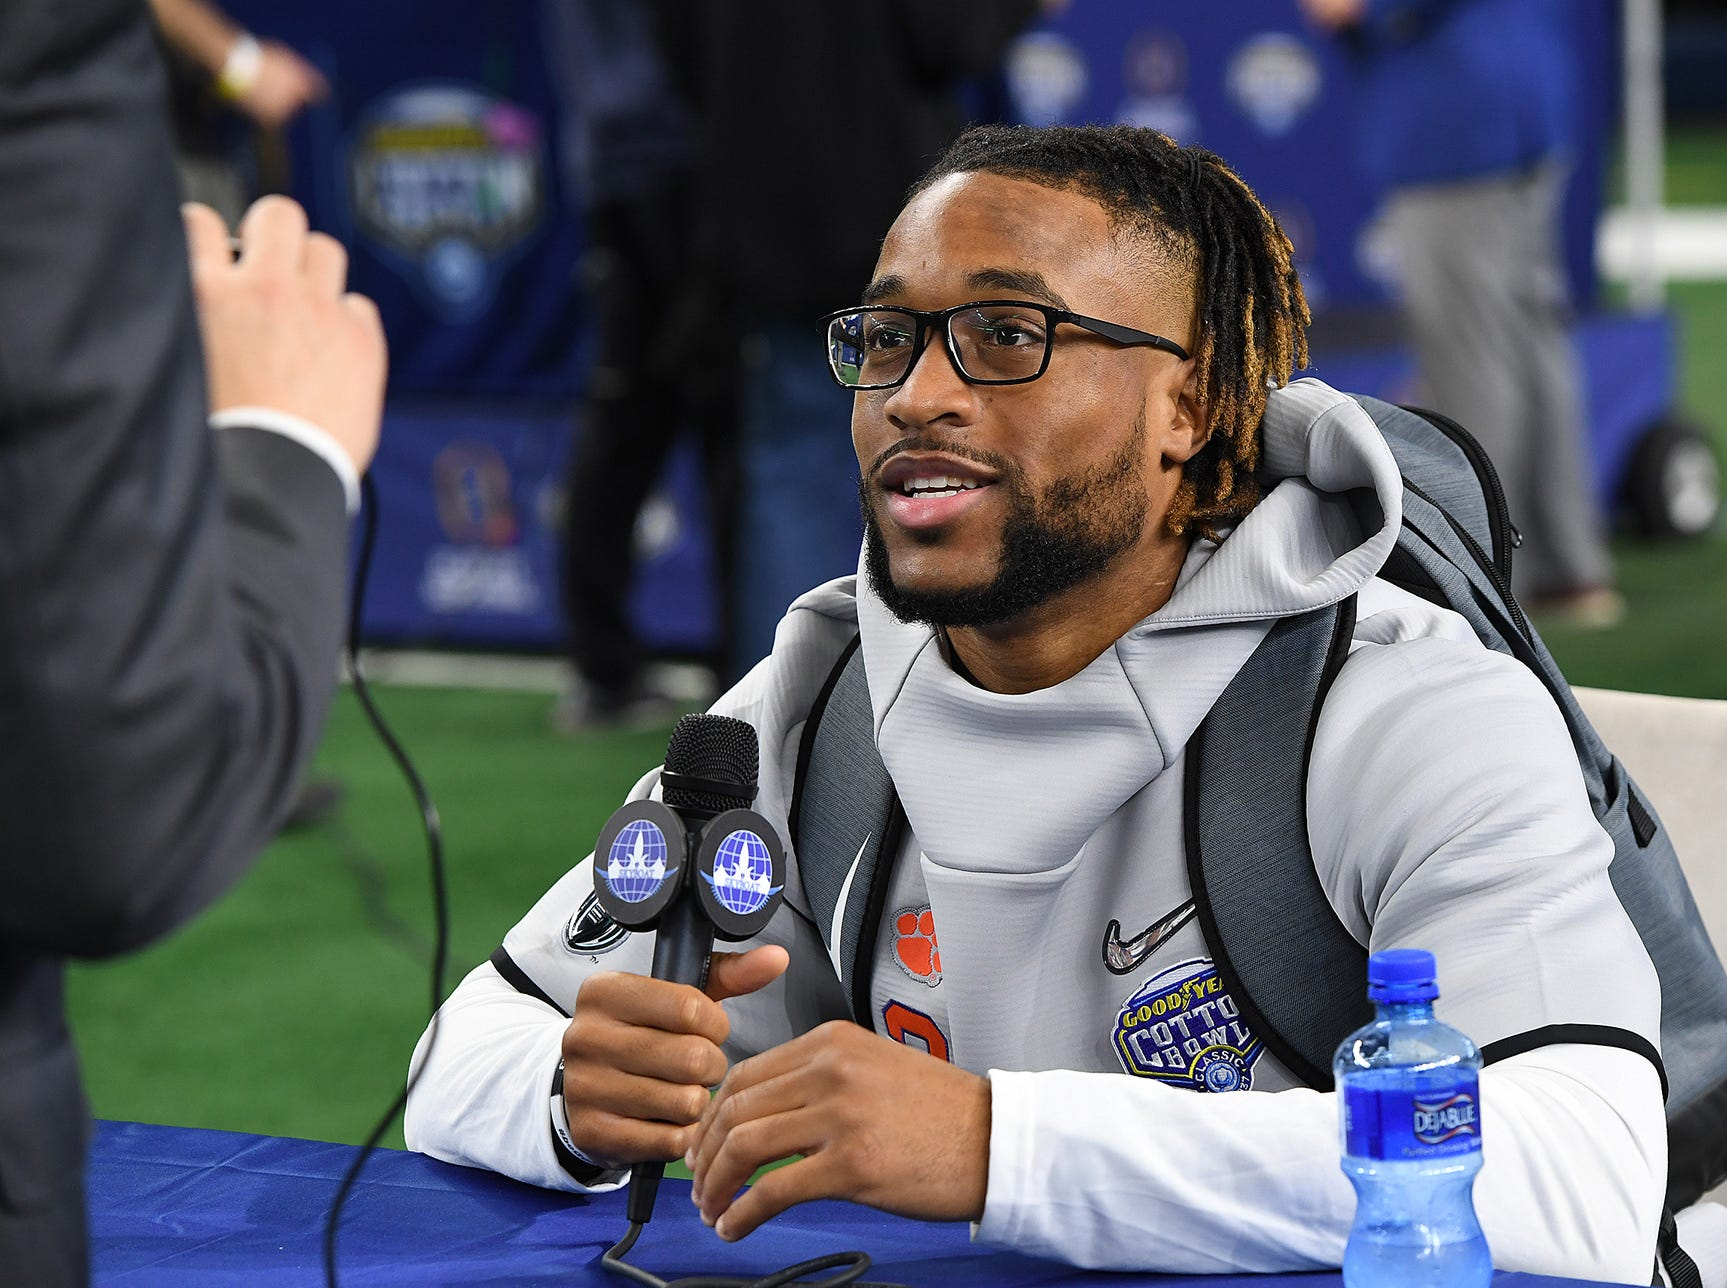 Clemson wide receiver Amari Rodgers (3) answers questions during the Tigers Cotton Bowl media day at AT&T Stadium in Arlington, TX Thursday, December 27, 2018.